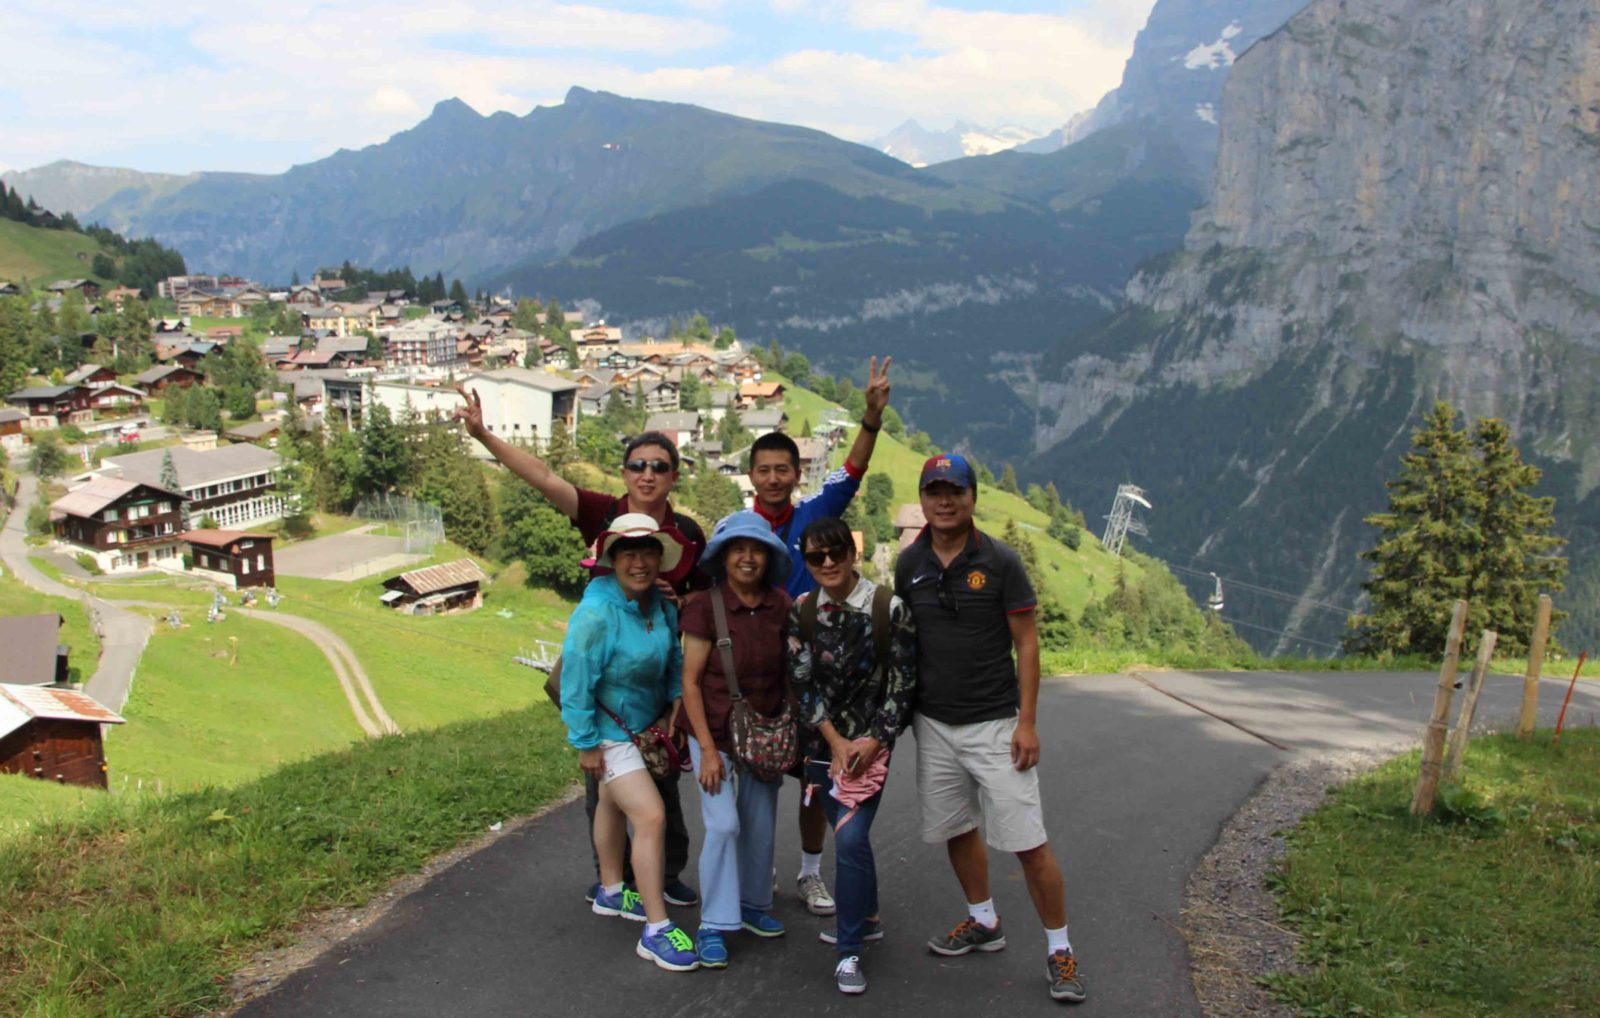 Swiss Alps: Interlaken & Murren, August 2015